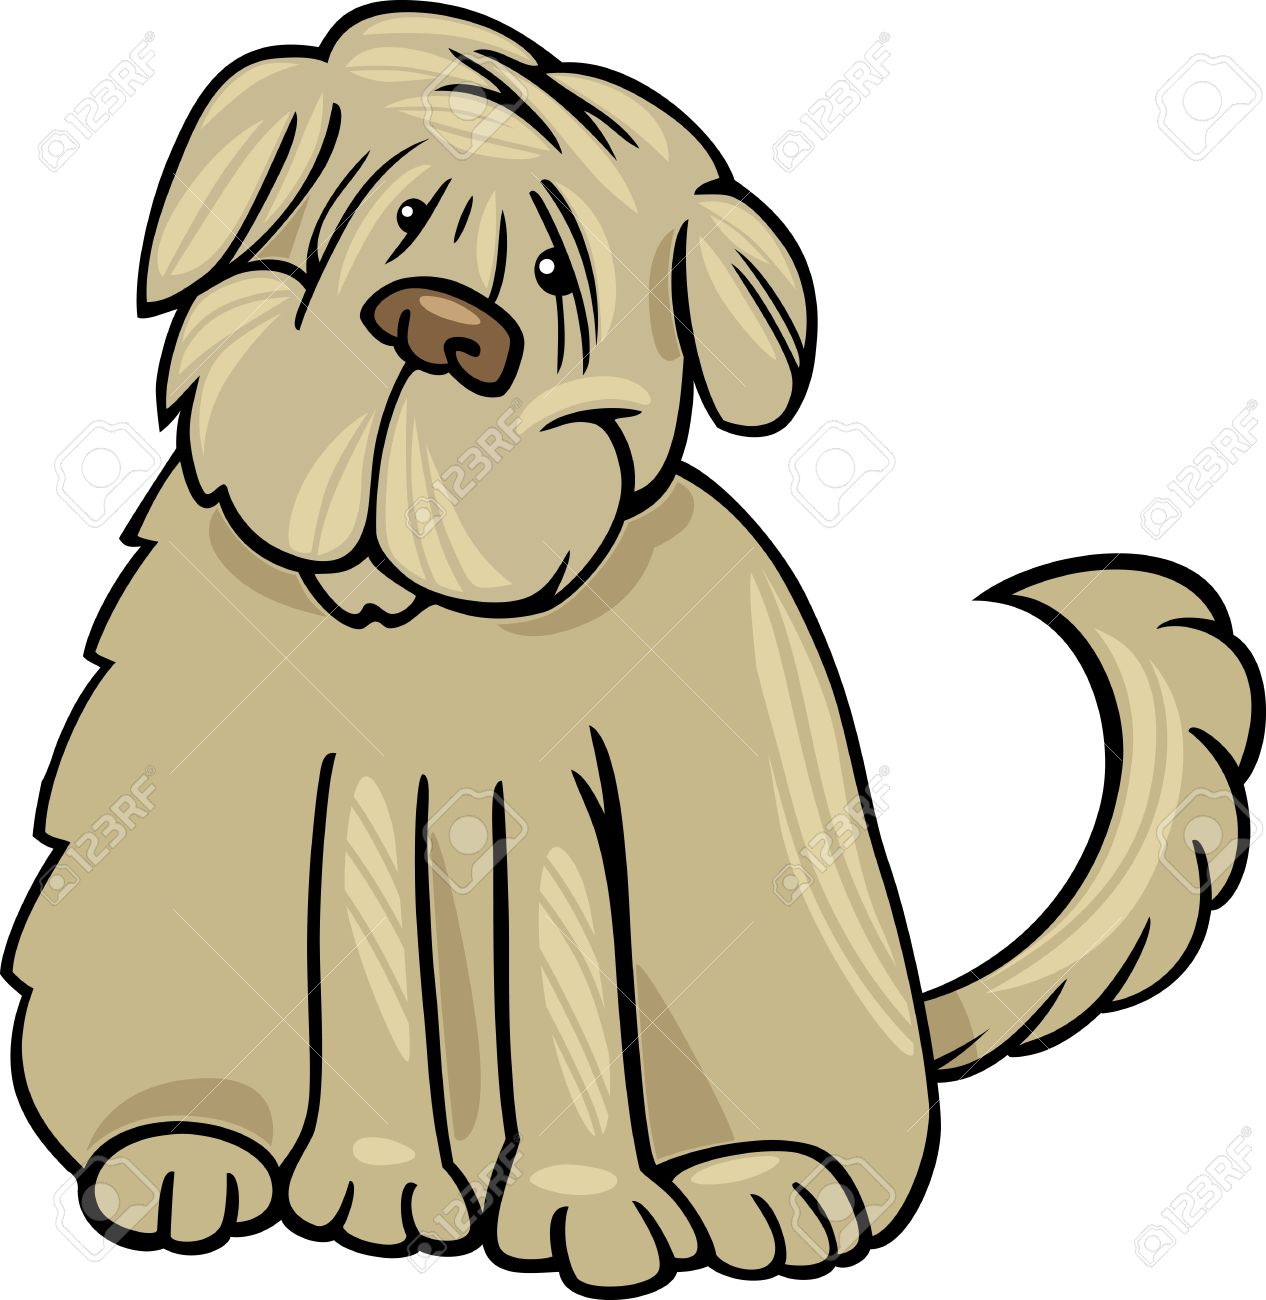 Cartoon Illustration Of Funny Purebred Tibetan Terrier Dog Or.